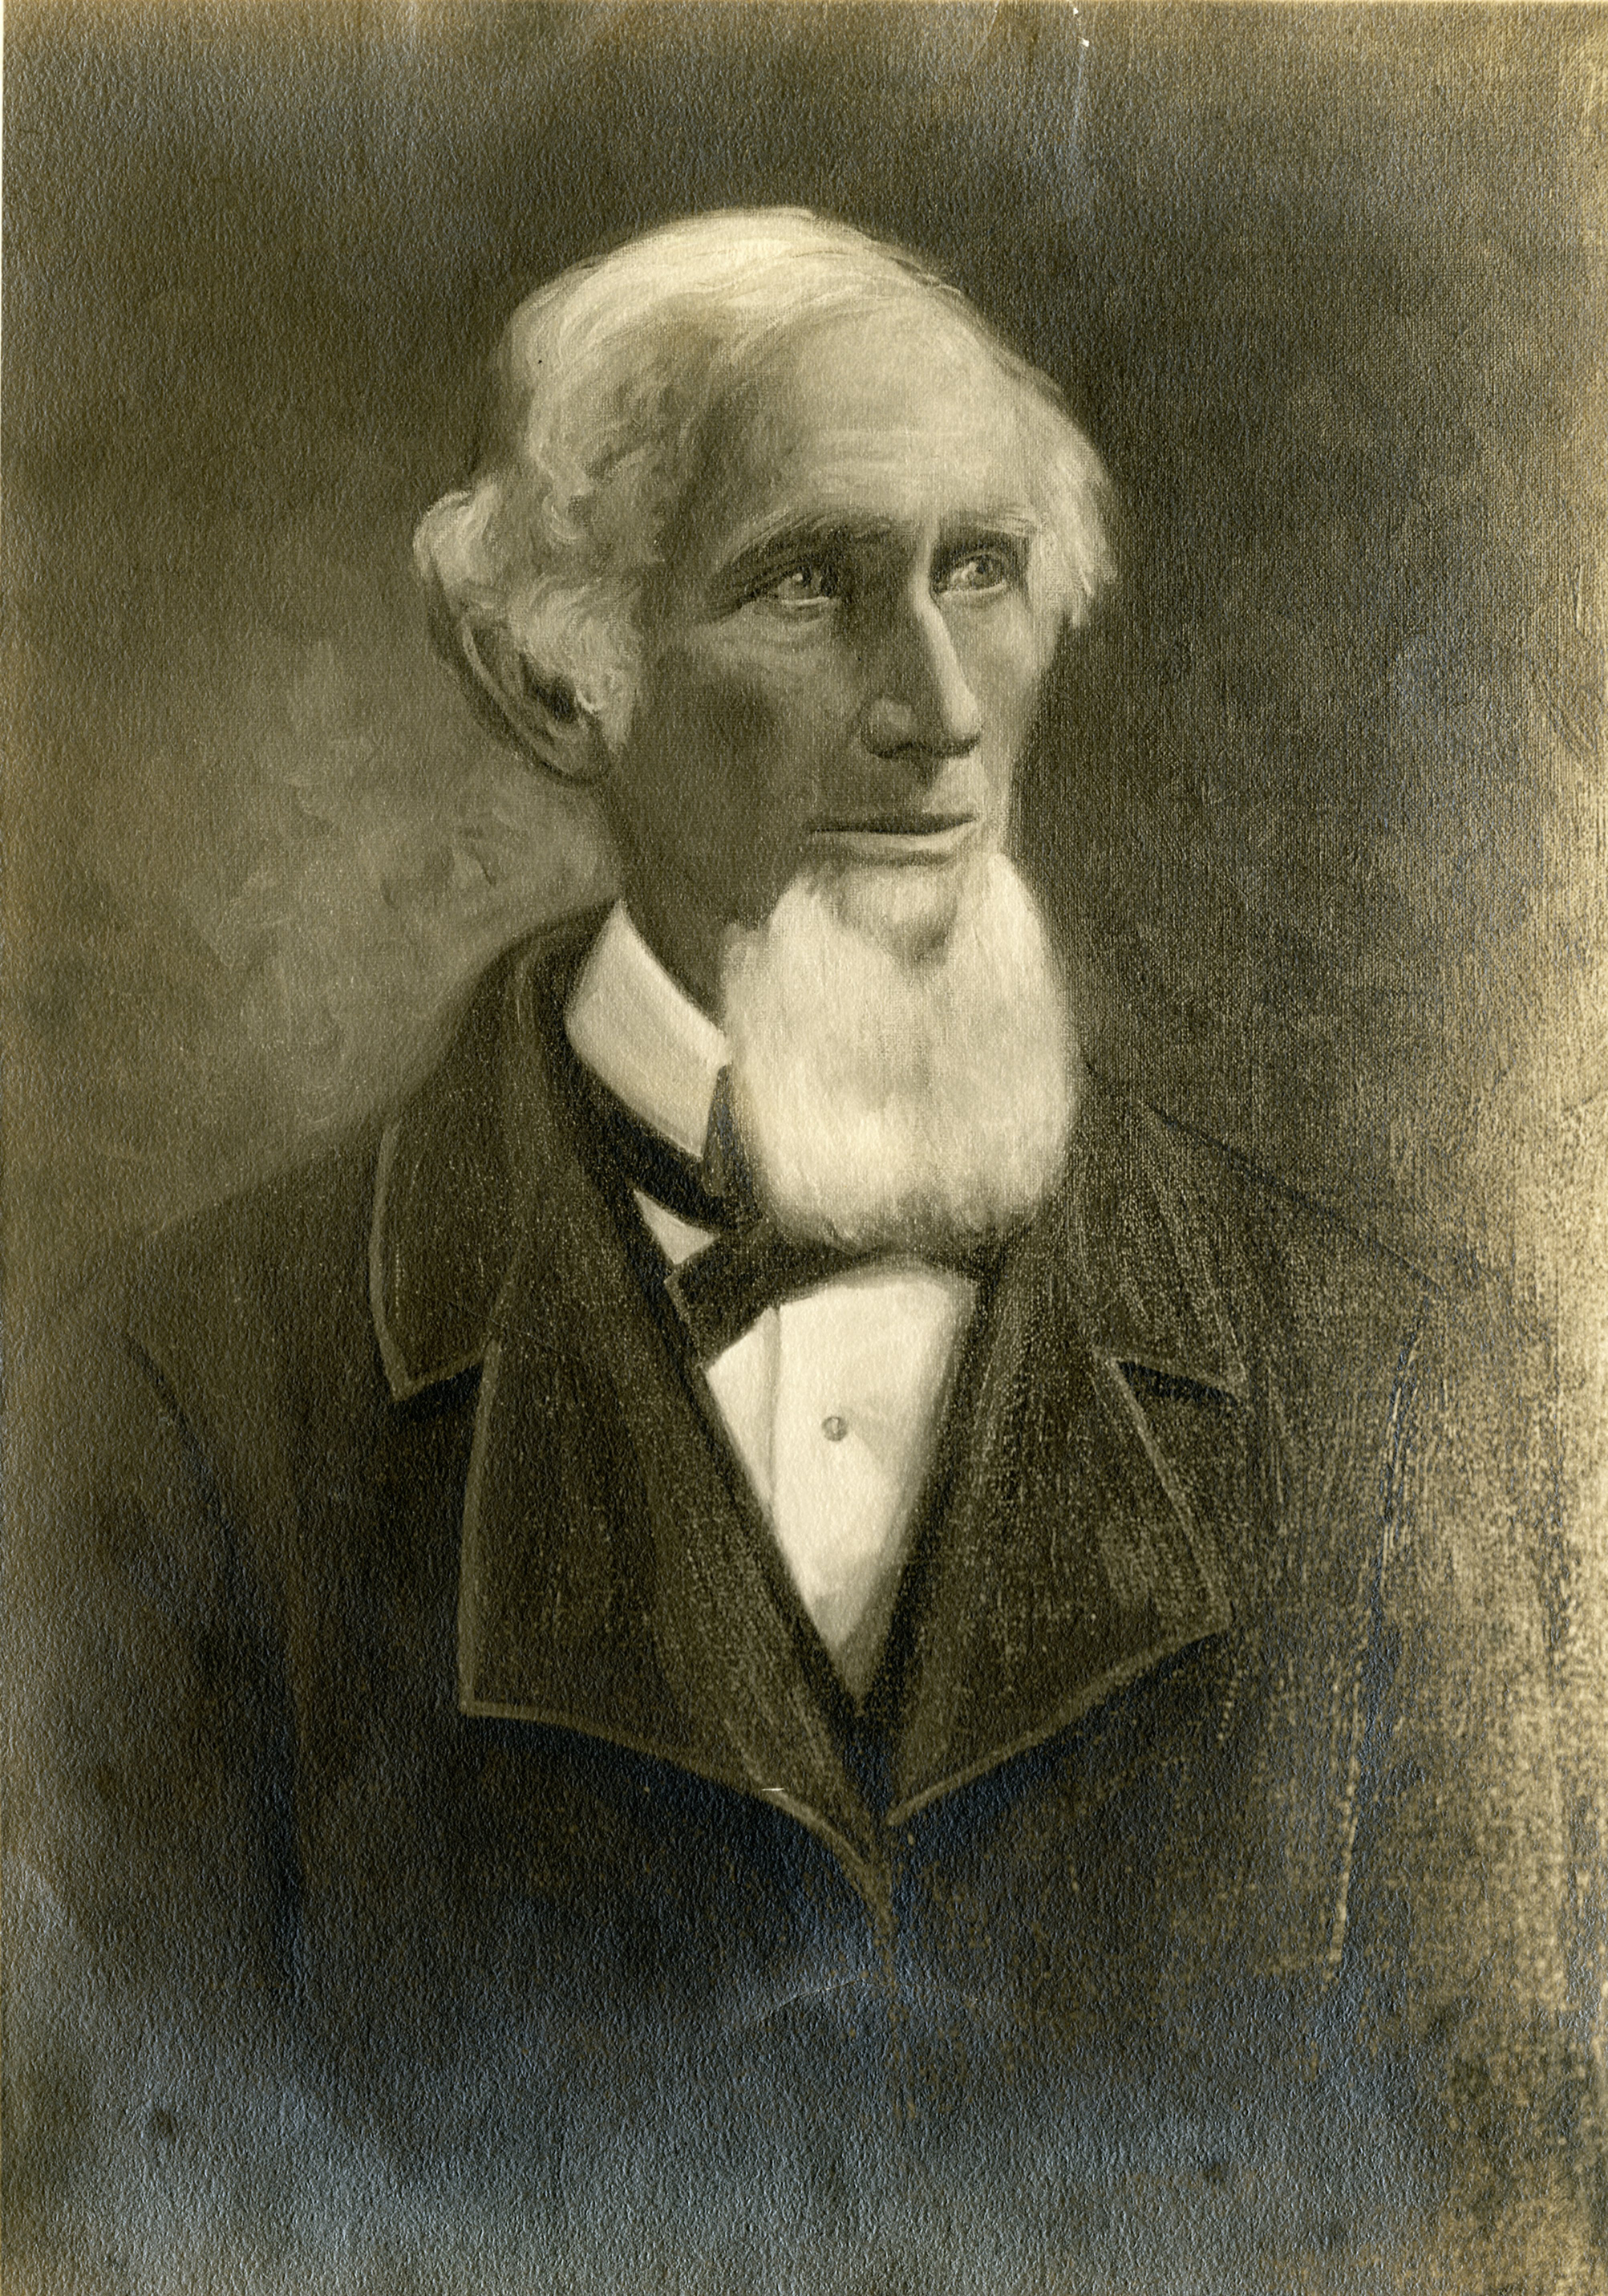 1859-Josiah Nott Founds the Medical College of Alabama